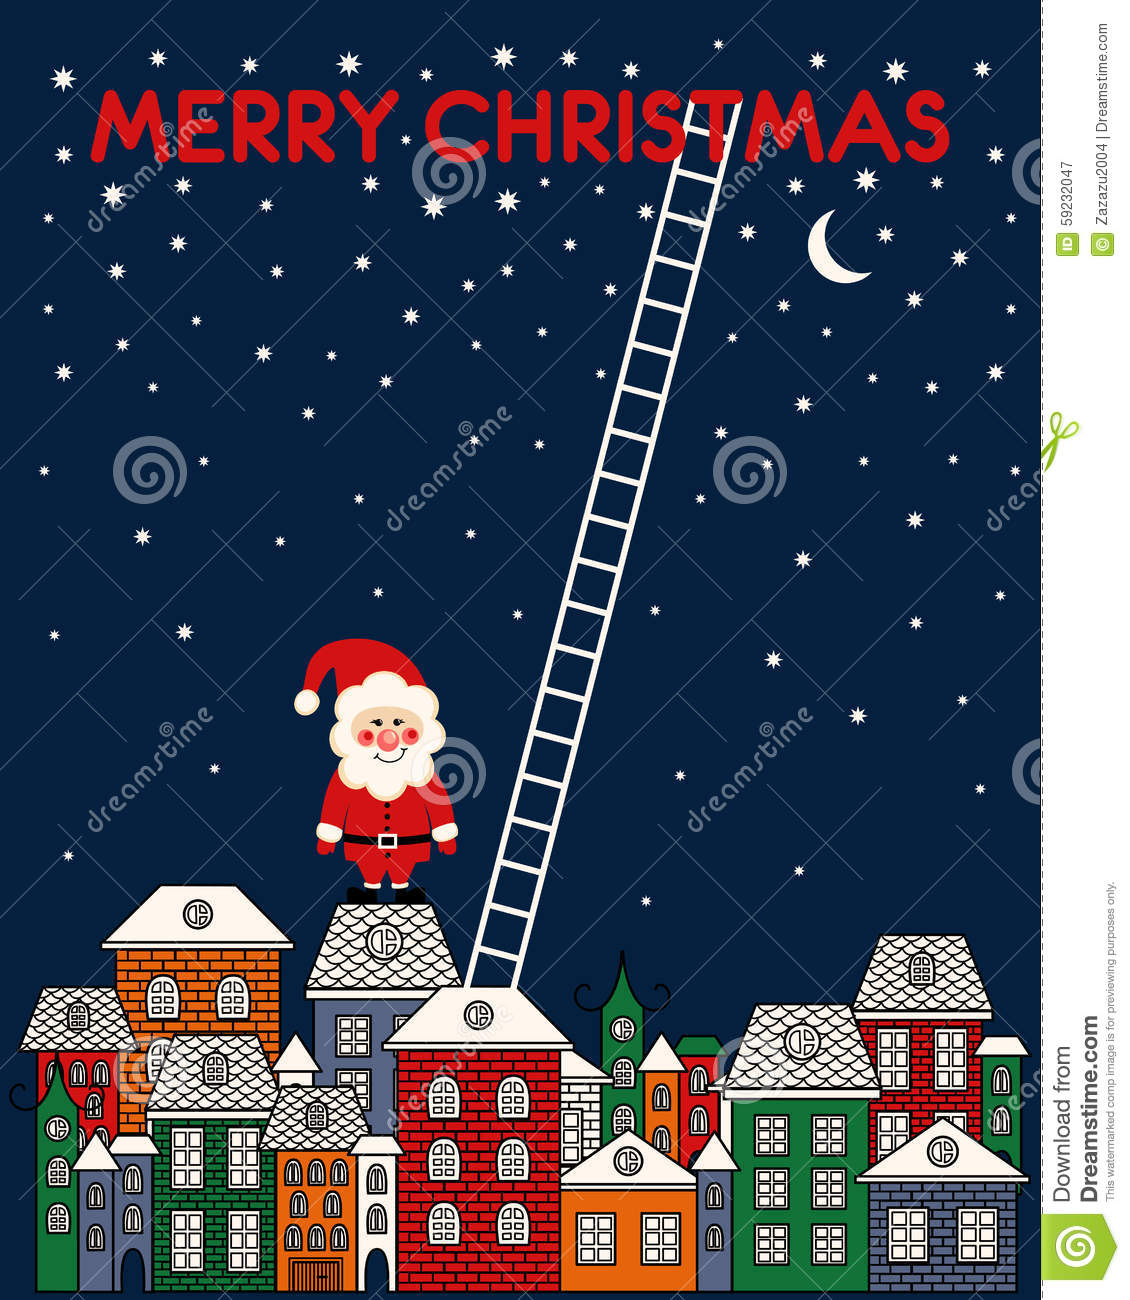 Merry En: Merry Christmas Card With Santa Claus, Old Town, Night Sky